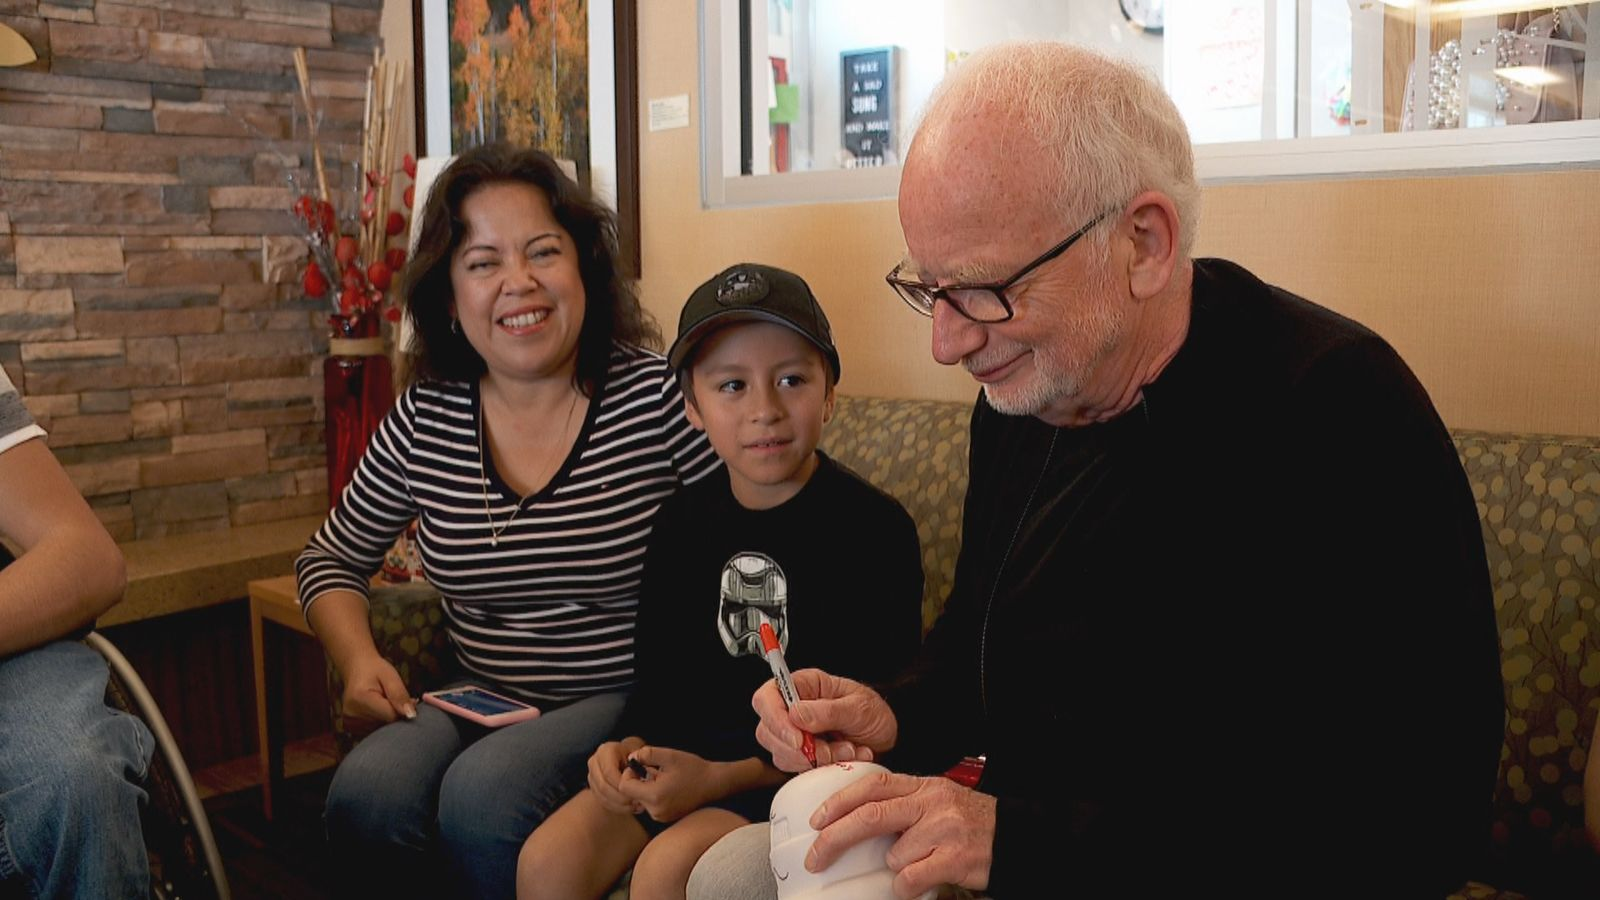 Actors Ian McDiarmid (Emperor Palpatine) and Hayden Christensen (Anakin Skywalker/Darth Vader) of Star Wars fame visit with kids and their families at Primary Children's Hospital in Salt Lake City, Utah on September 5. 2019. (Photo: KUTV)